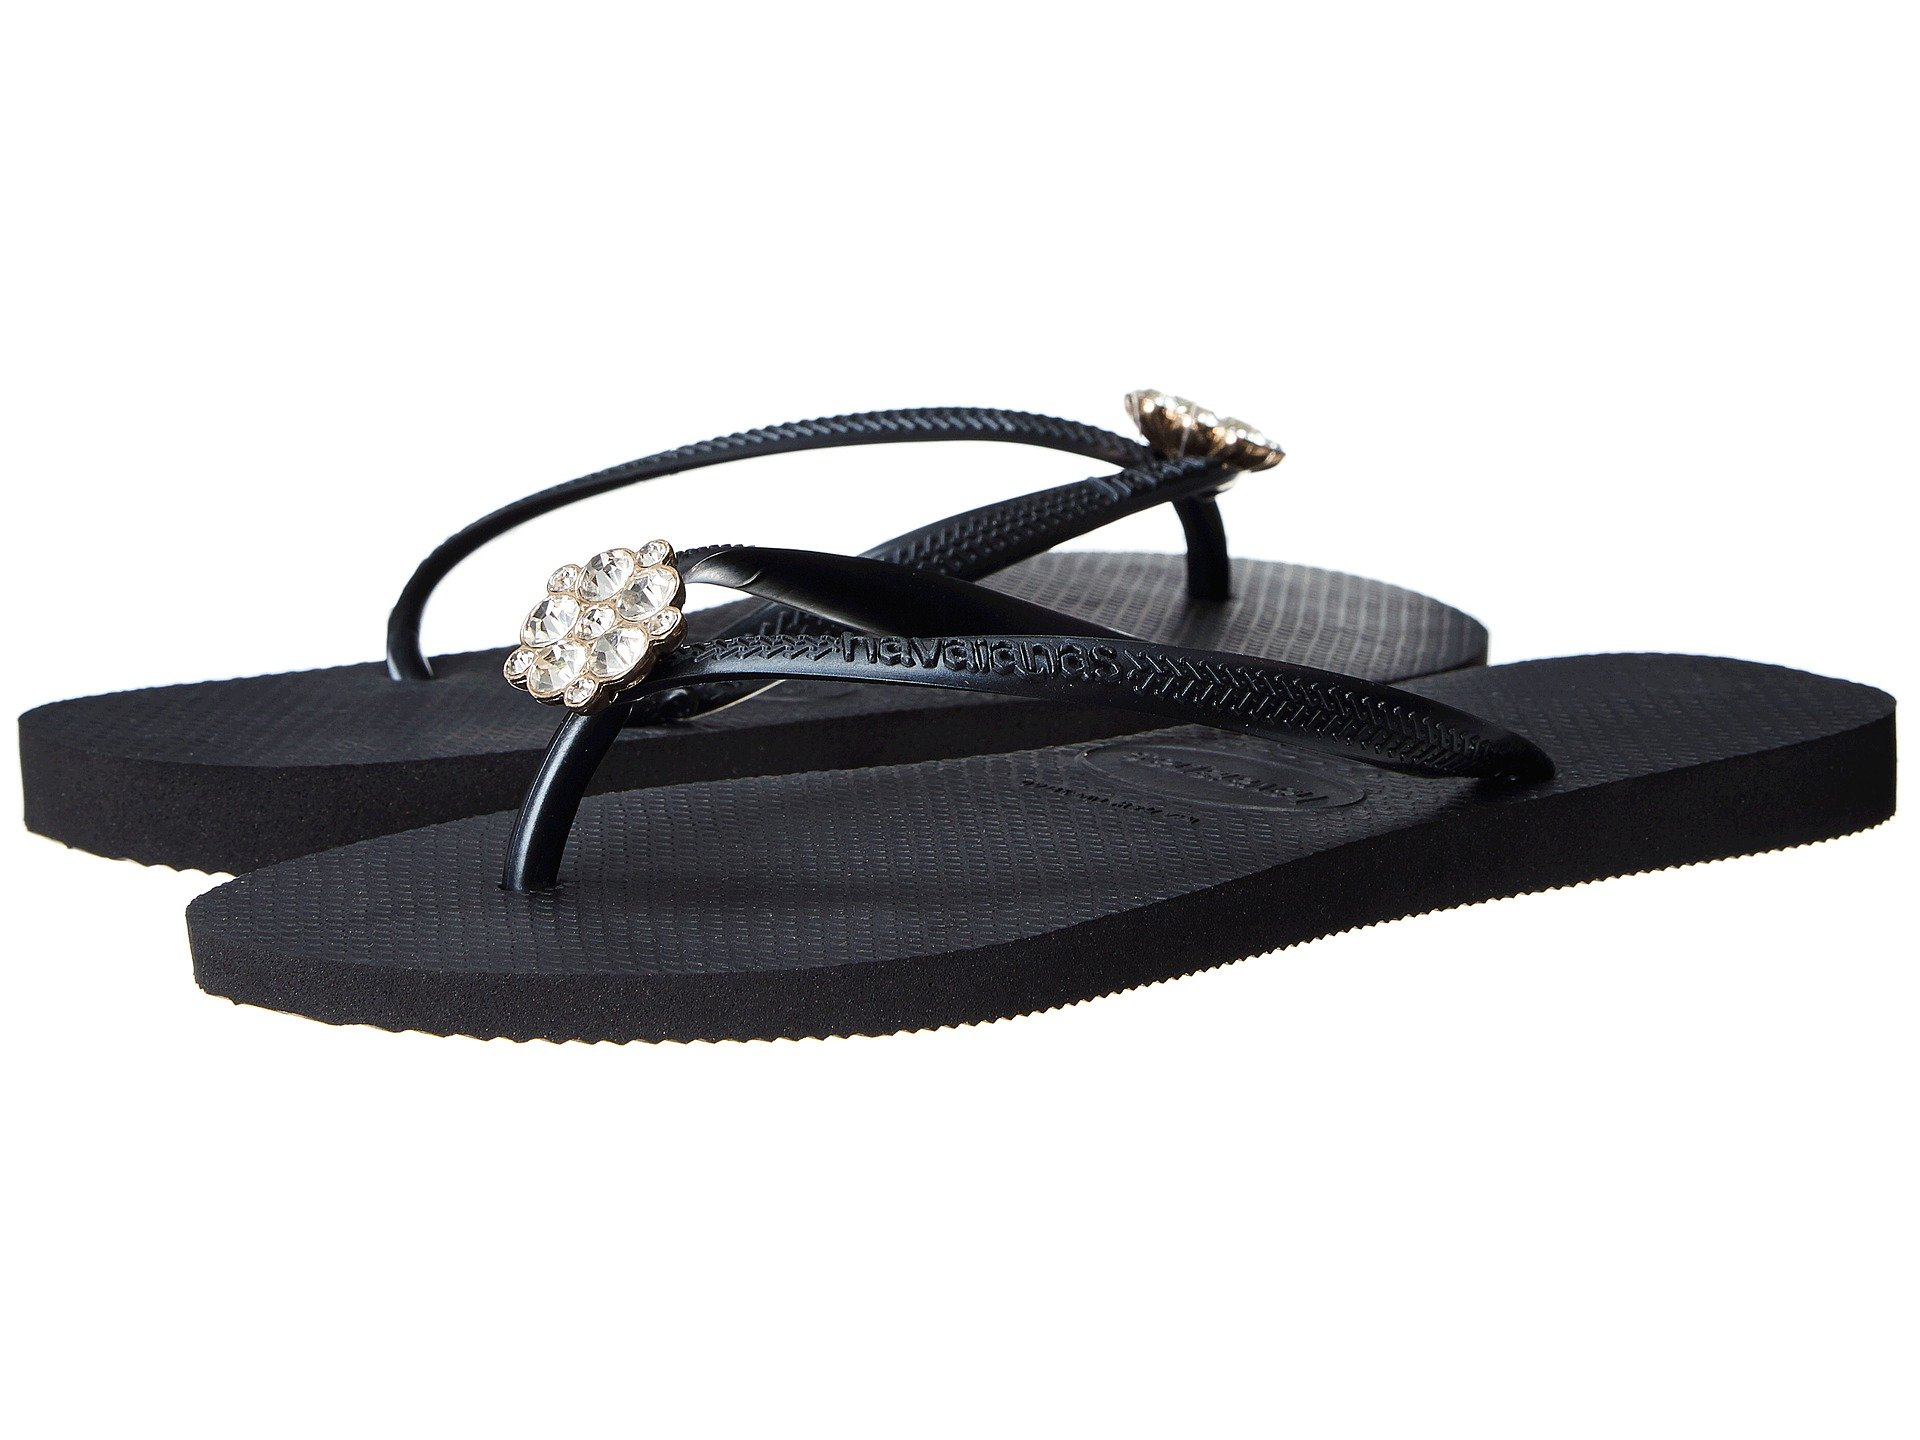 3f47caf07a7ece Havaianas Slim Crystal Poem Flip Flops In Black Dark Grey